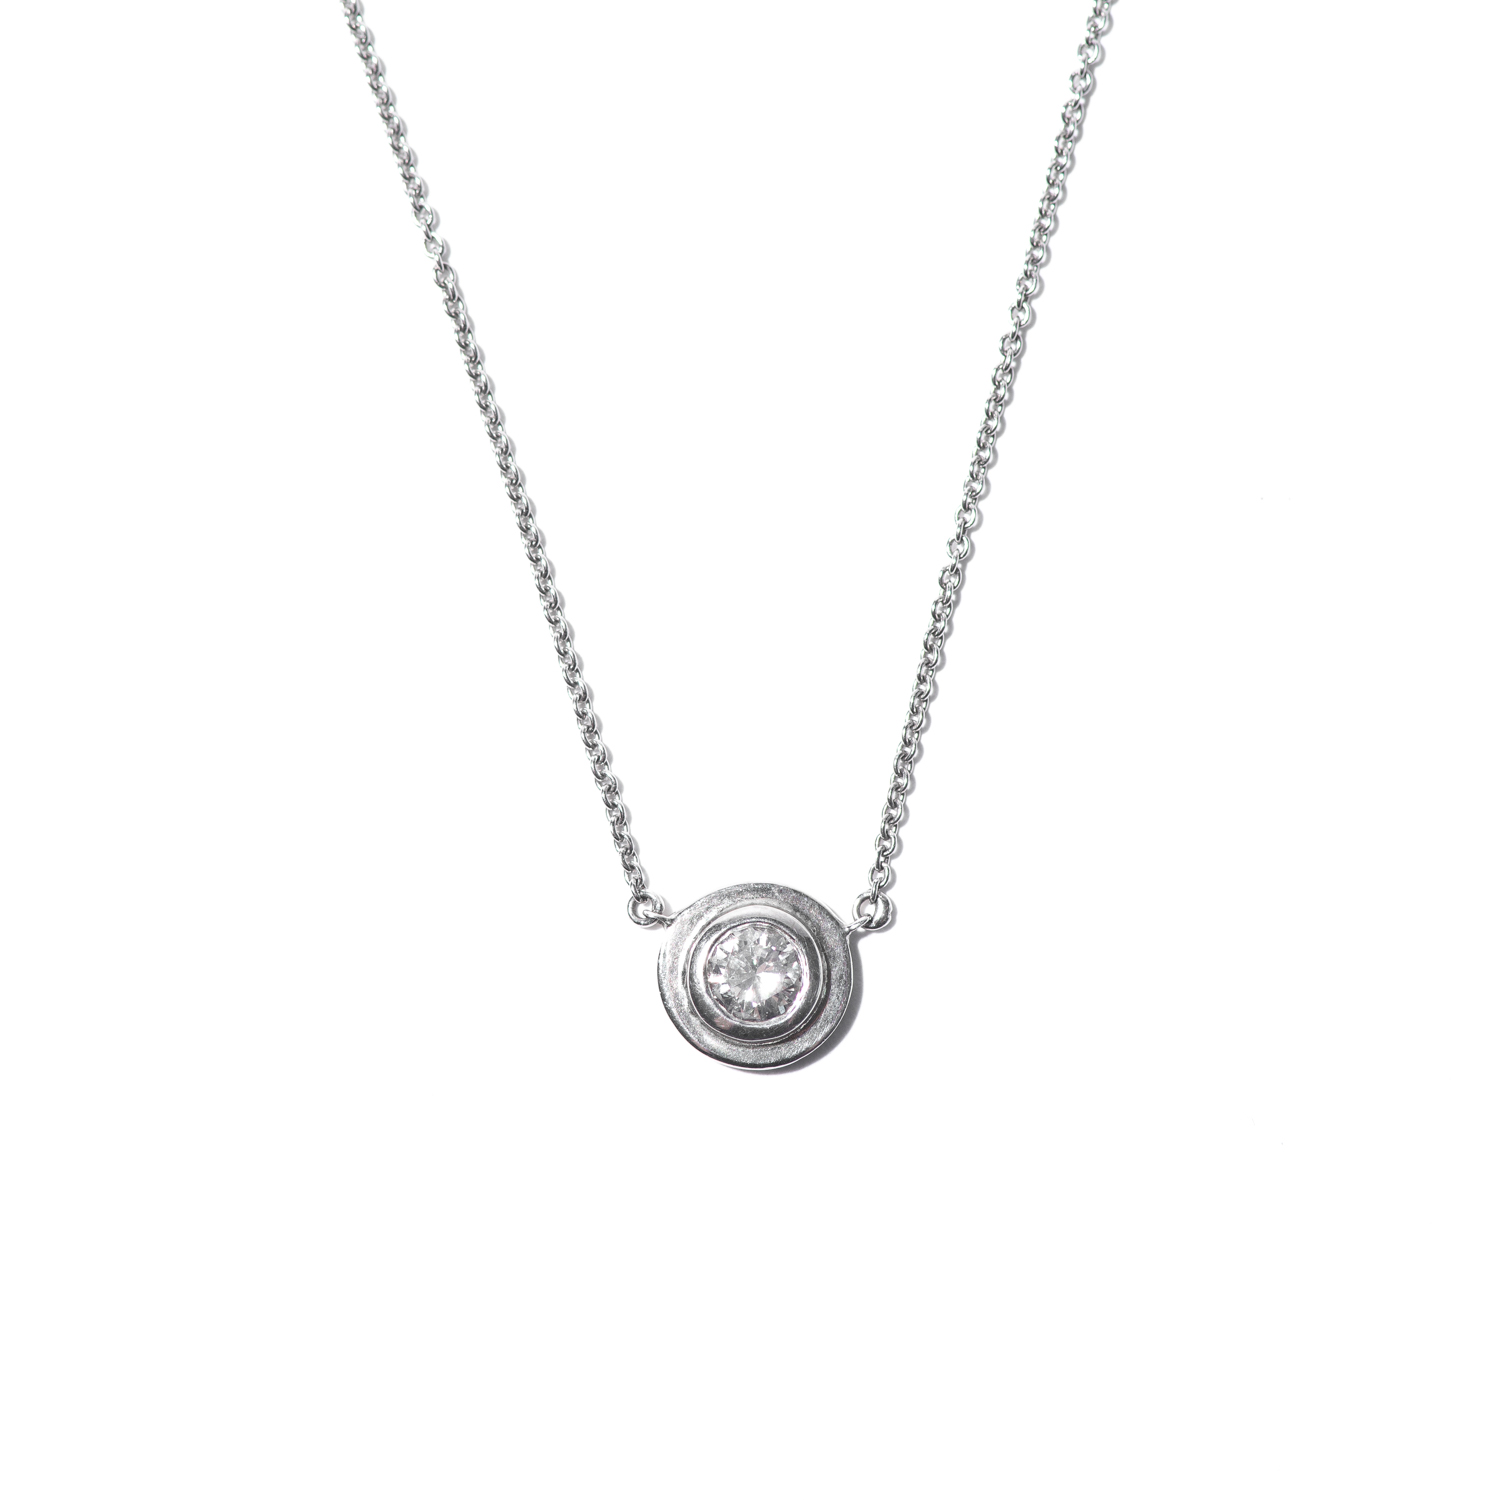 Design Twenty Eight. - Diamond Pendent Necklace with White Gold Metal Detail